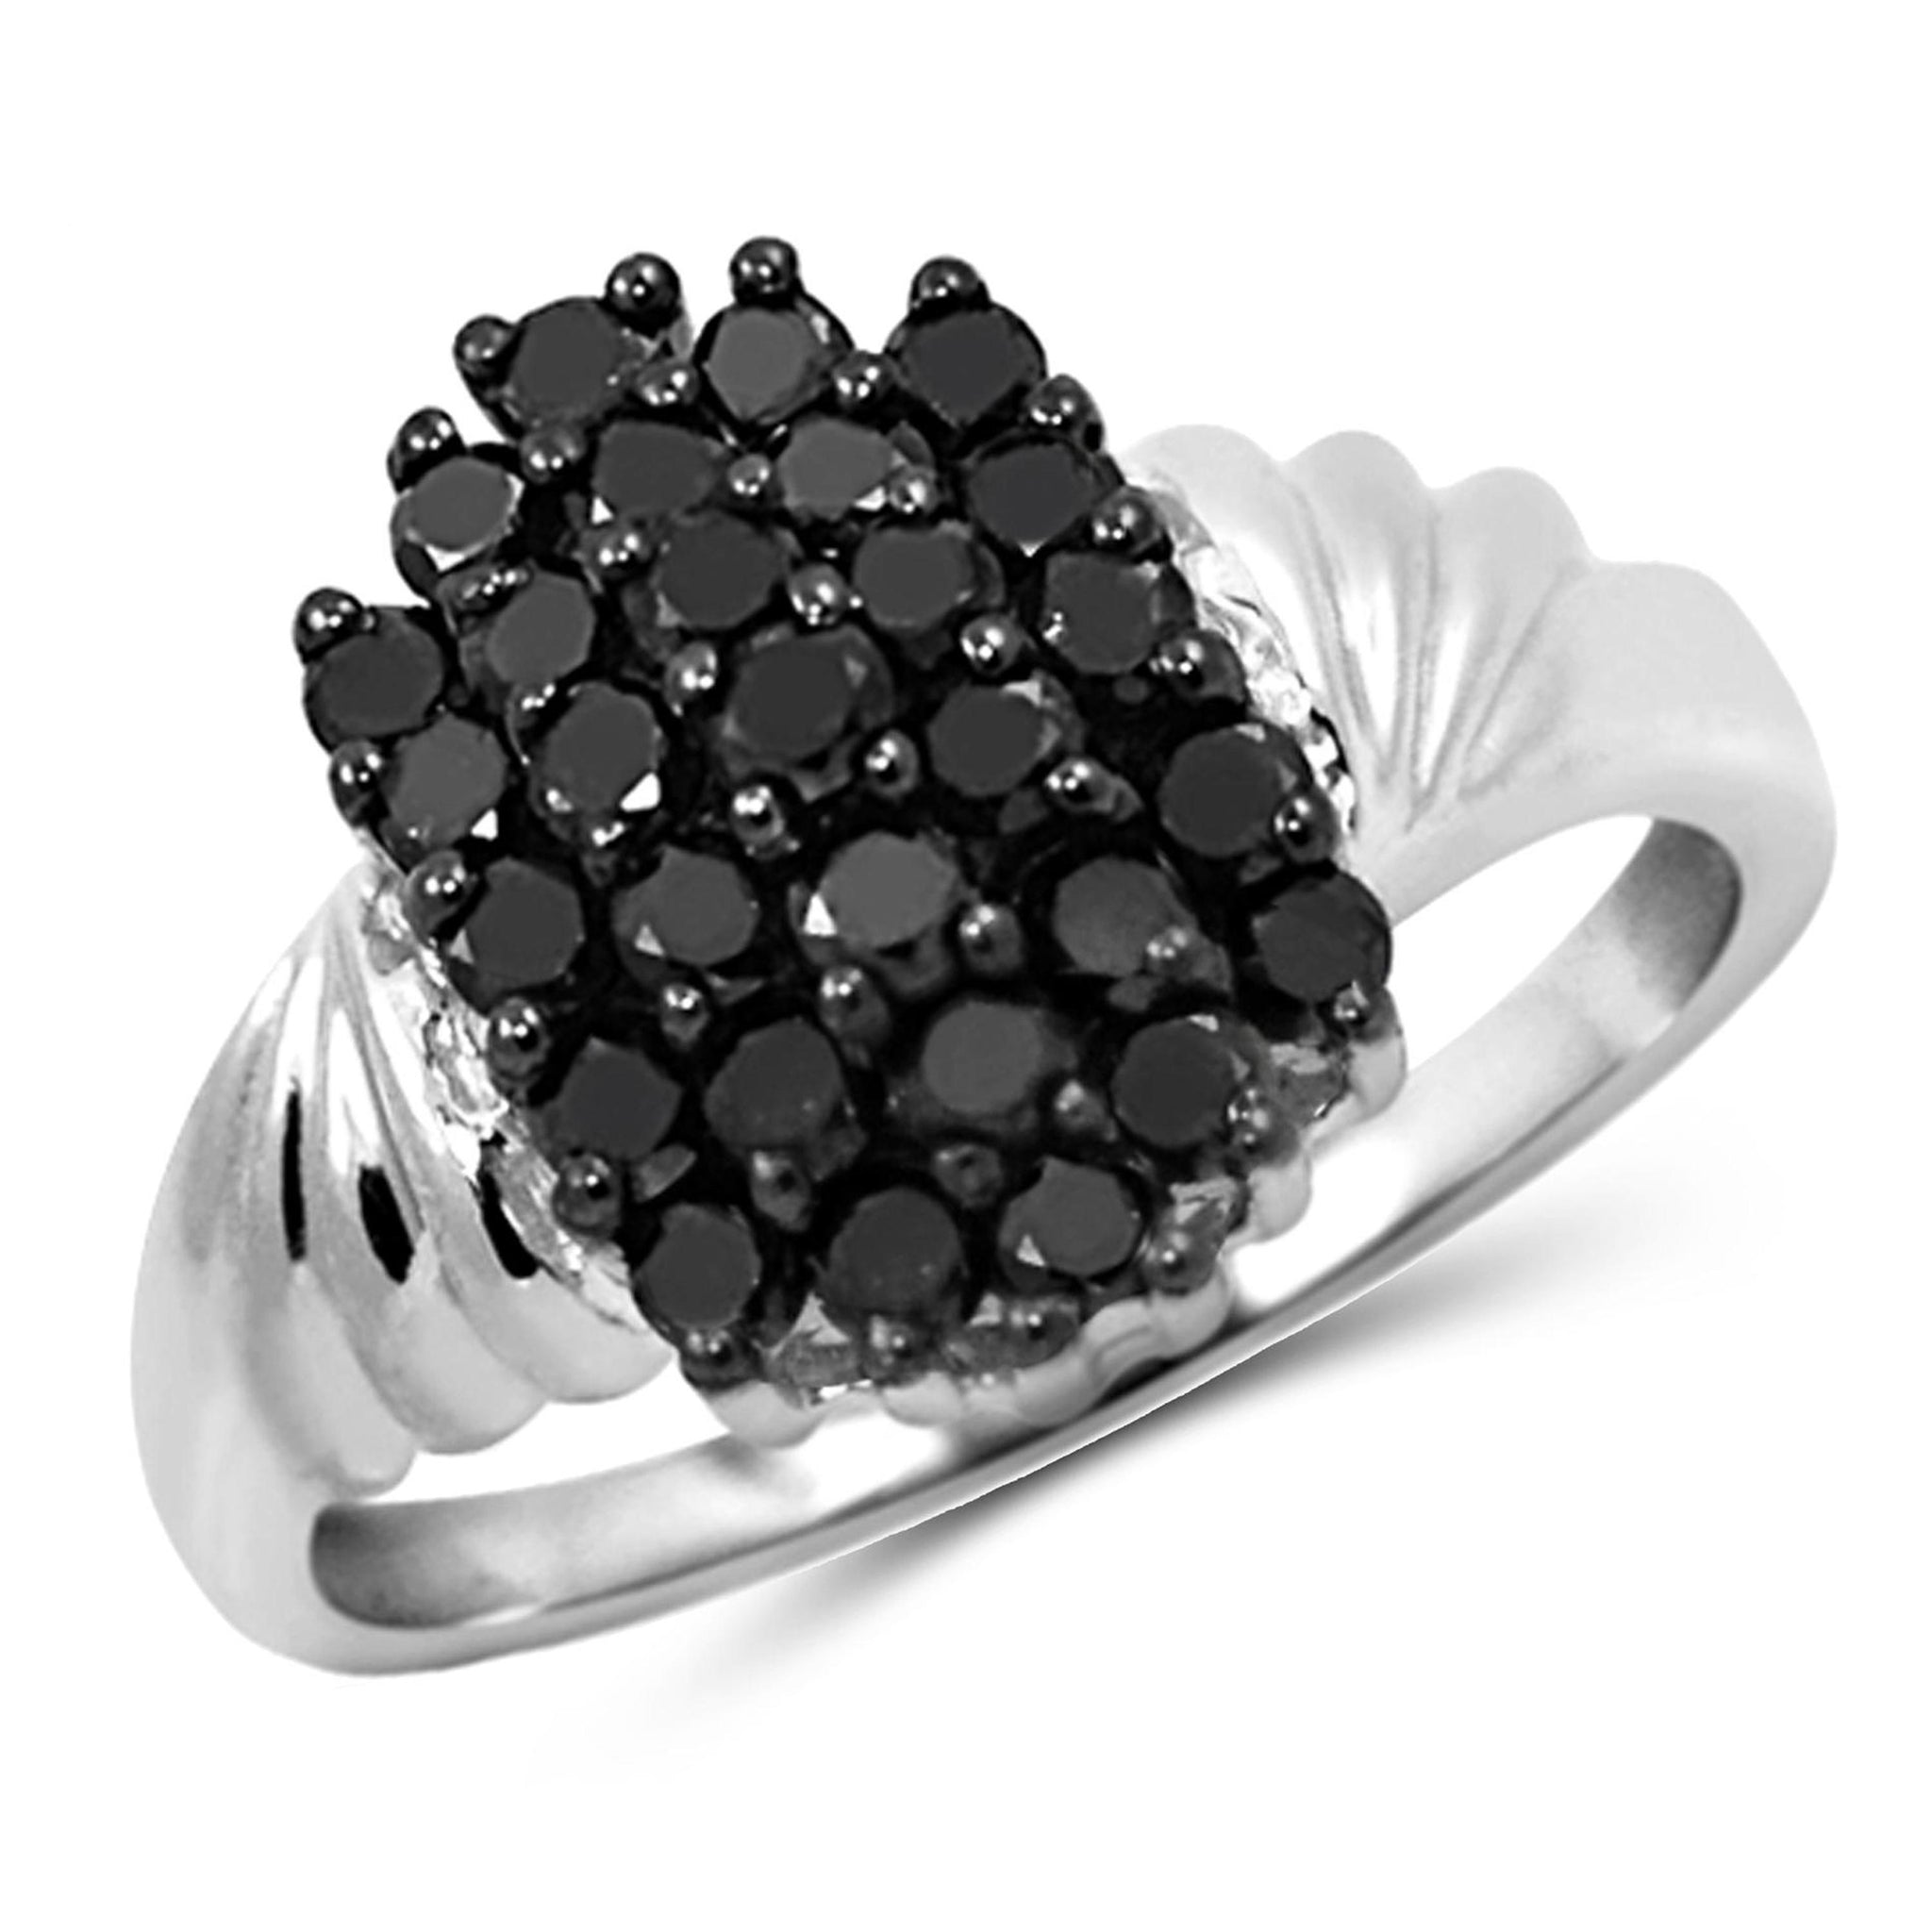 JewelonFire 1 CTW Black Diamond Sterling Silver Ring